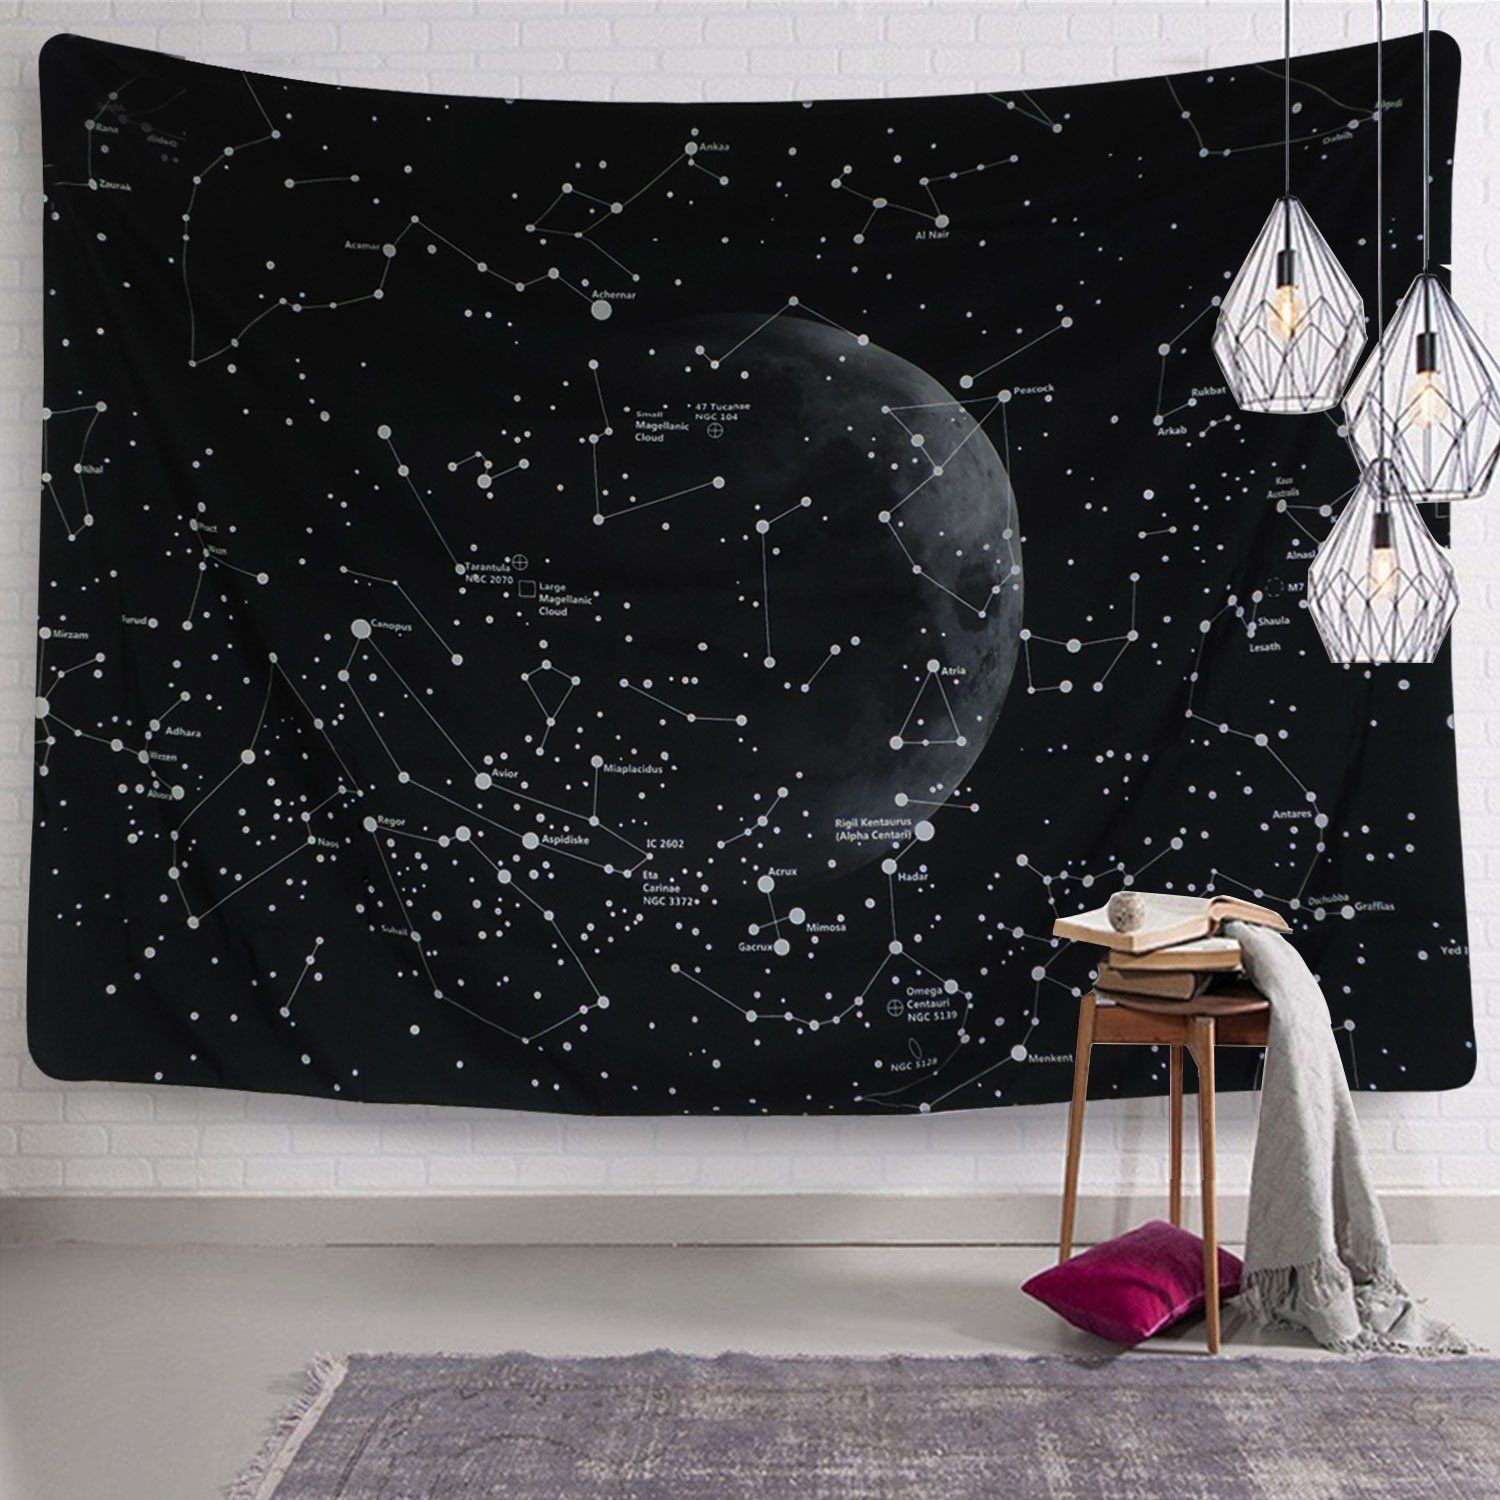 Moon Constellations Tapestry Wall Tapestry Bohemian Wall Hanging Tapestries Wall Blanket Wall Art Wa Constellation Tapestry Tapestry Wall Art Indian Wall Decor